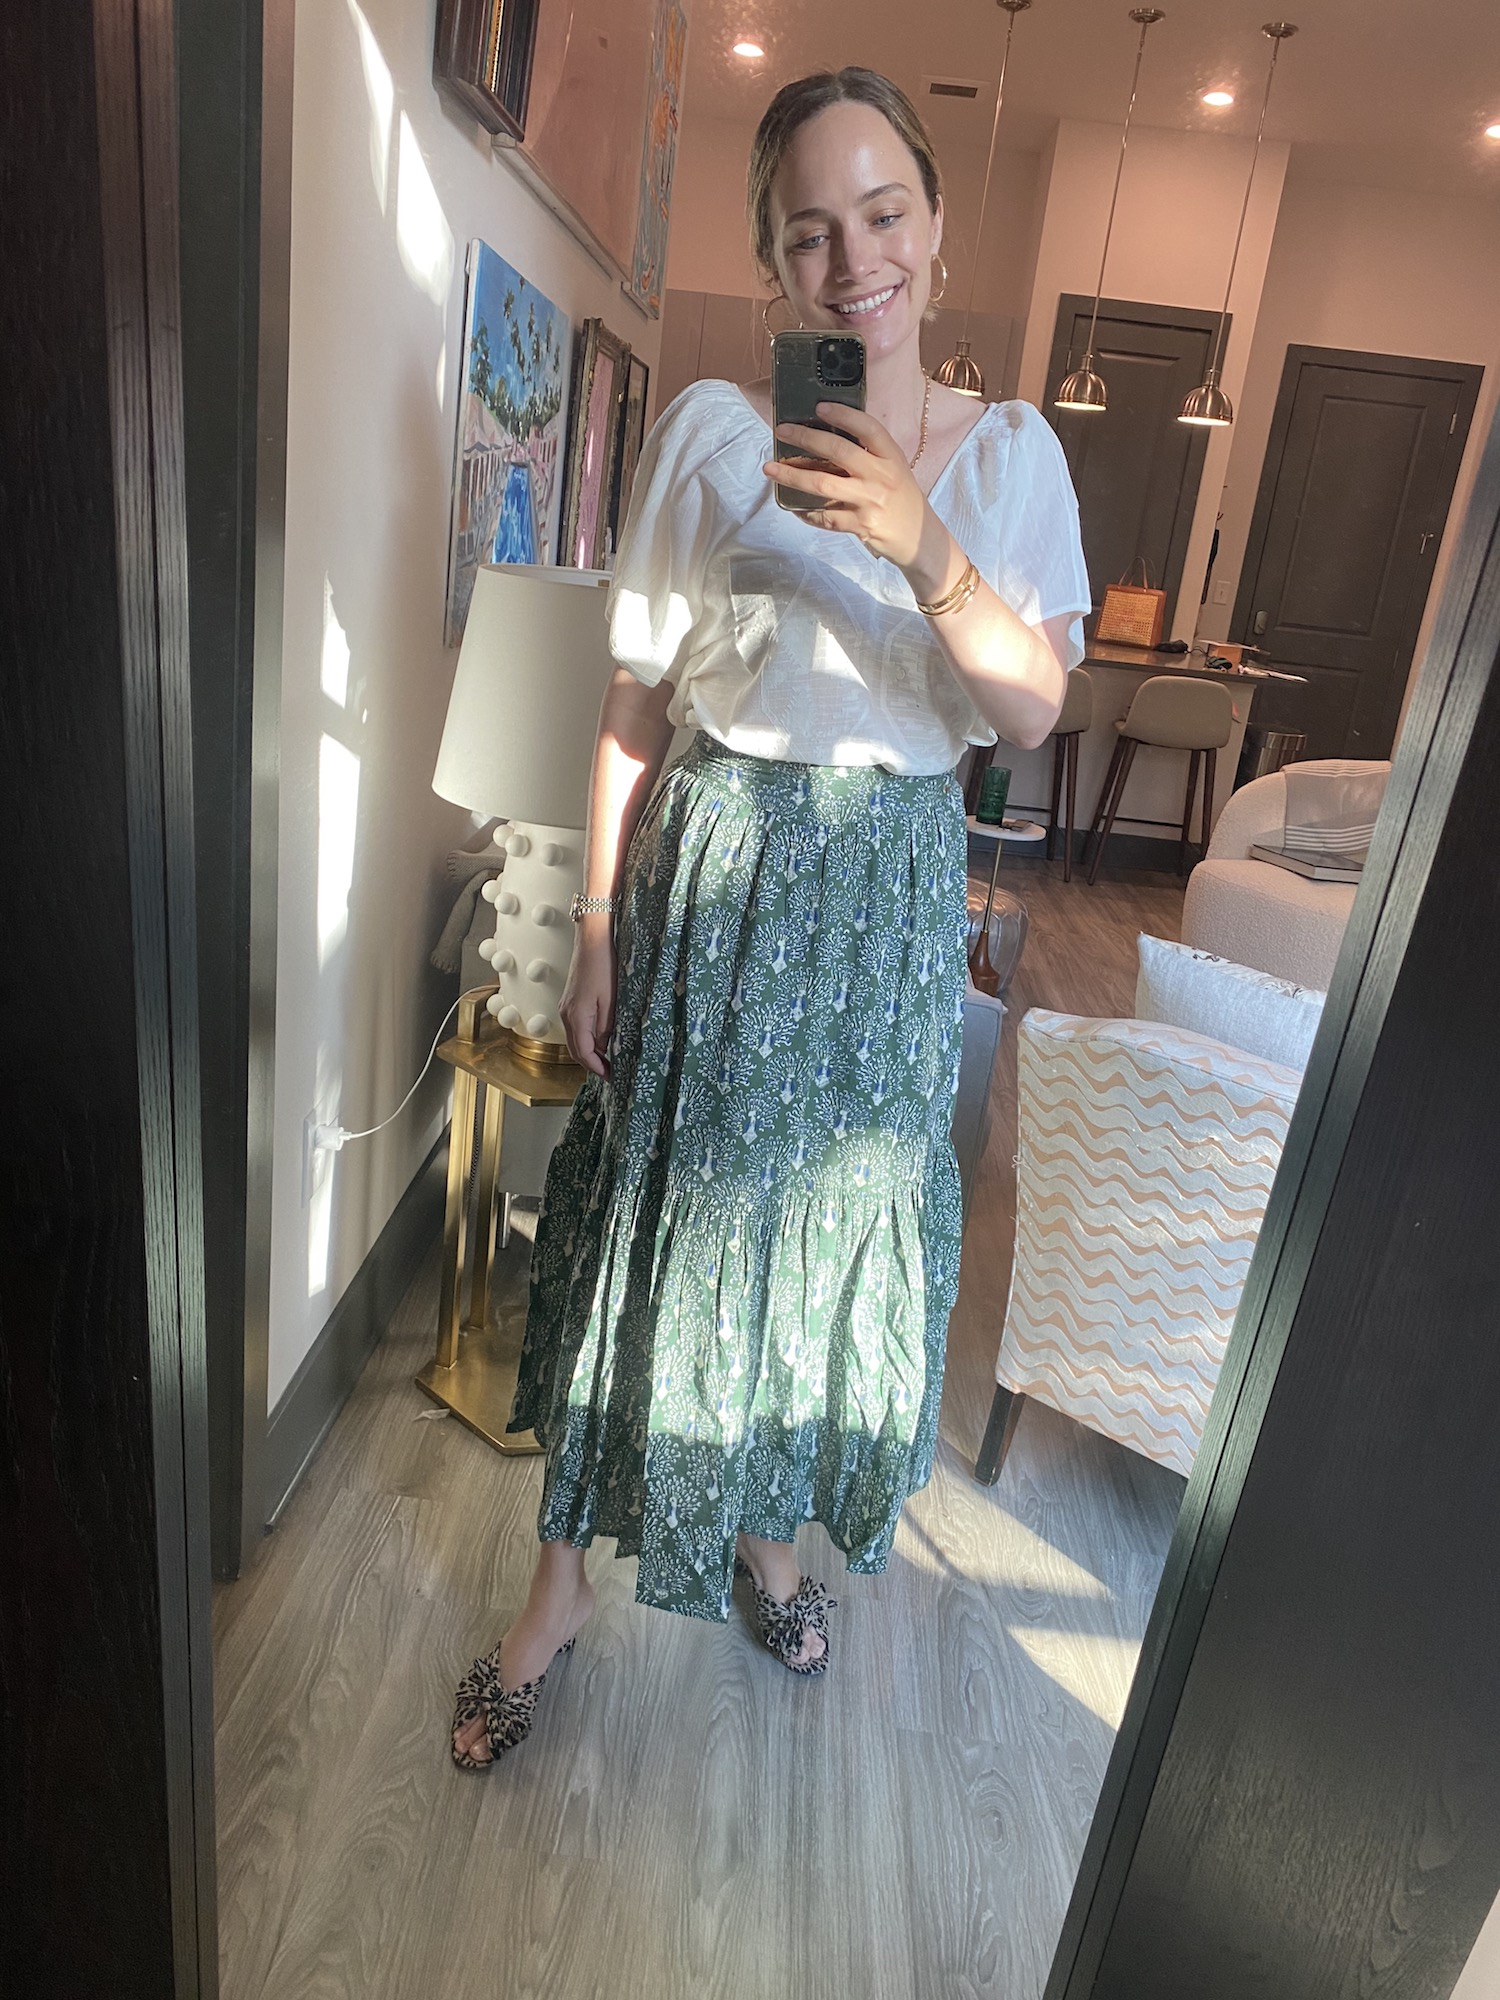 green maxi skirt from Mirth | A Week of Outfits 5.19.21